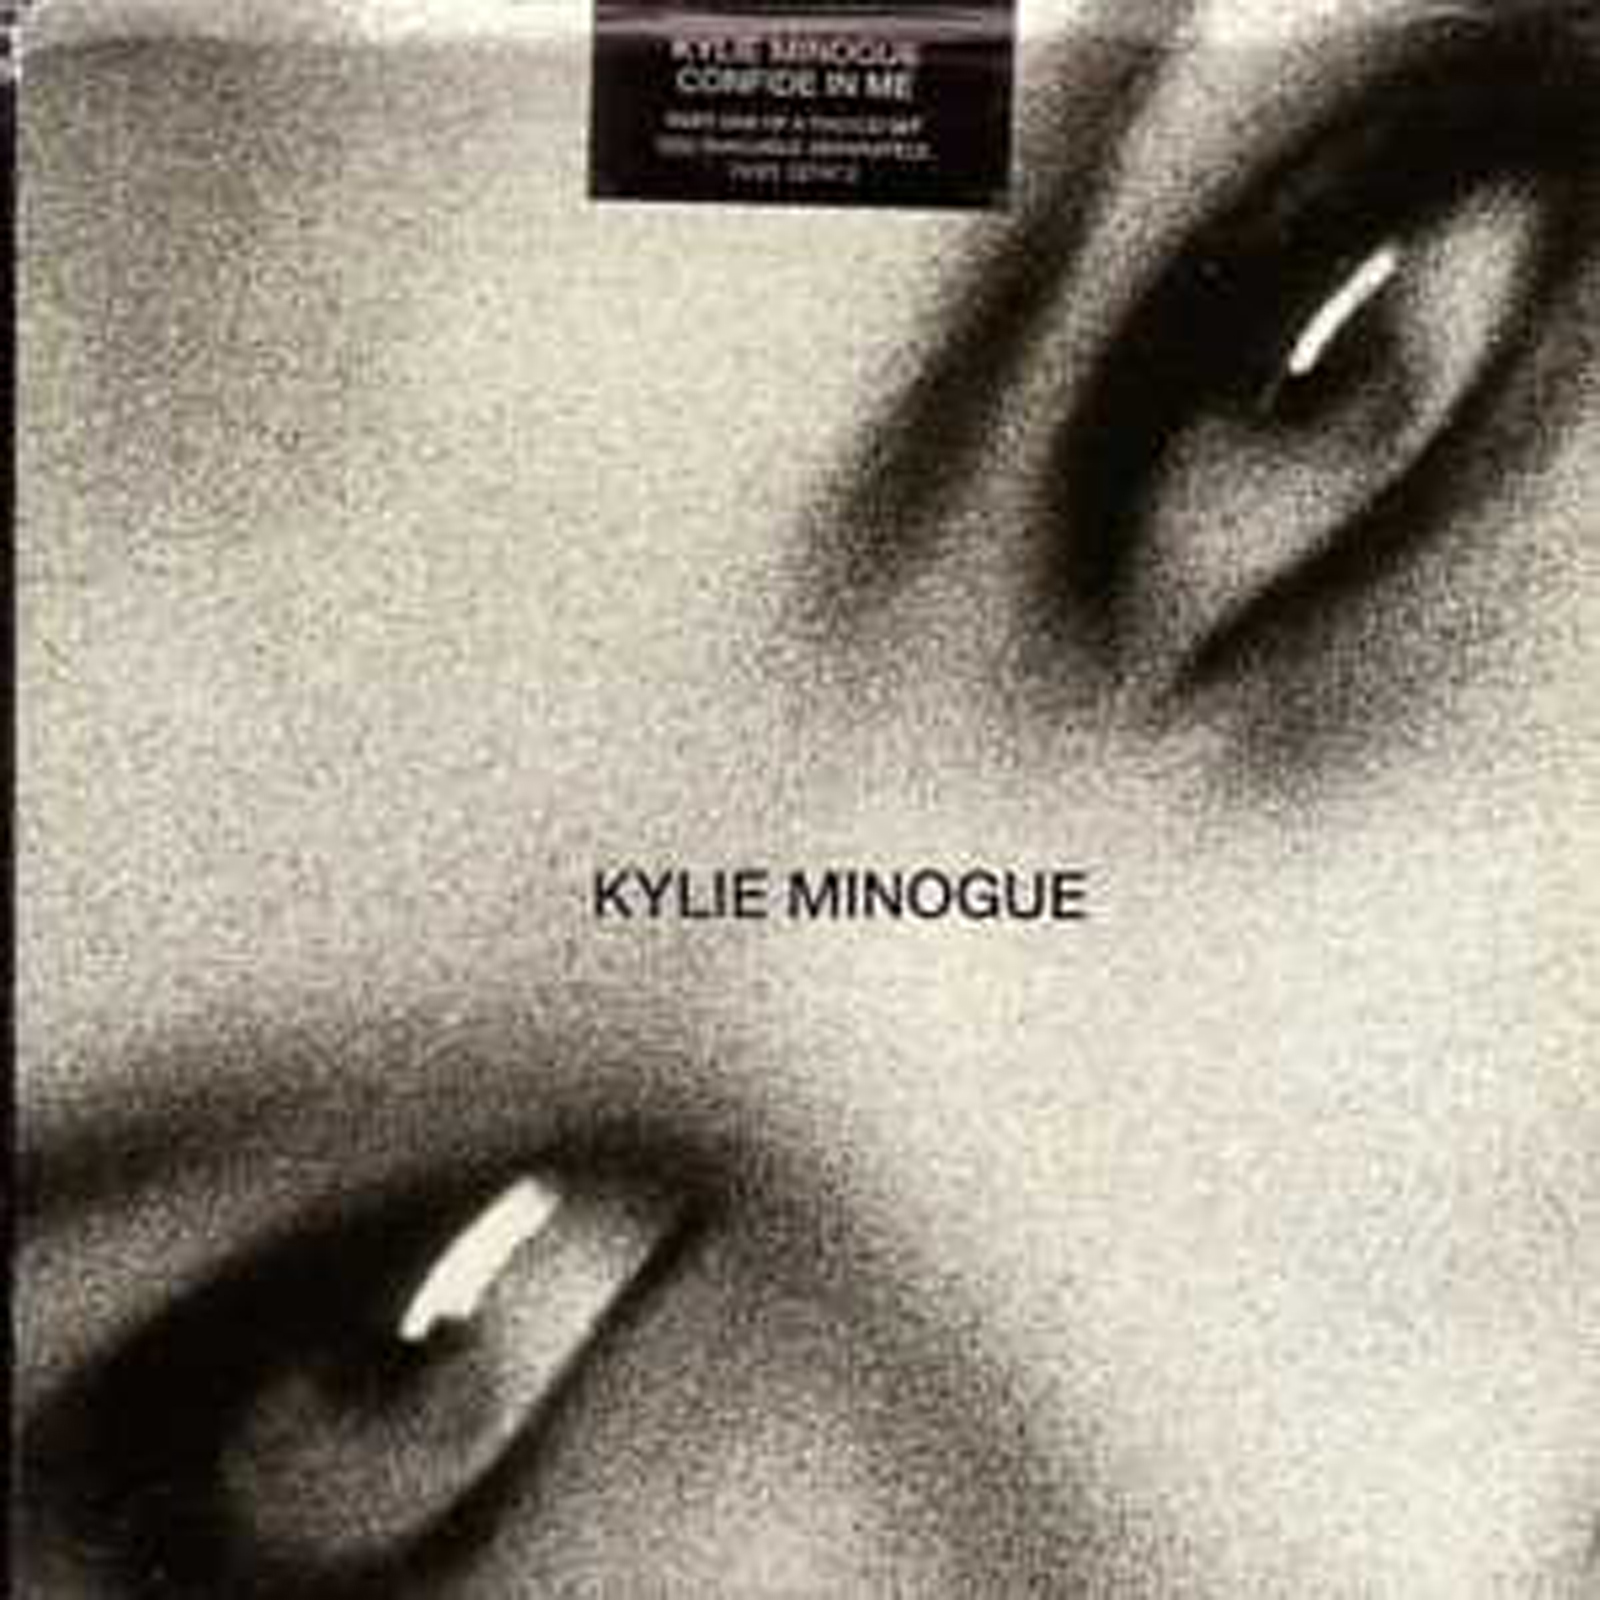 Kylie MINOGUE - Confide In Me Rare 1994 Uk Part 1 3-track